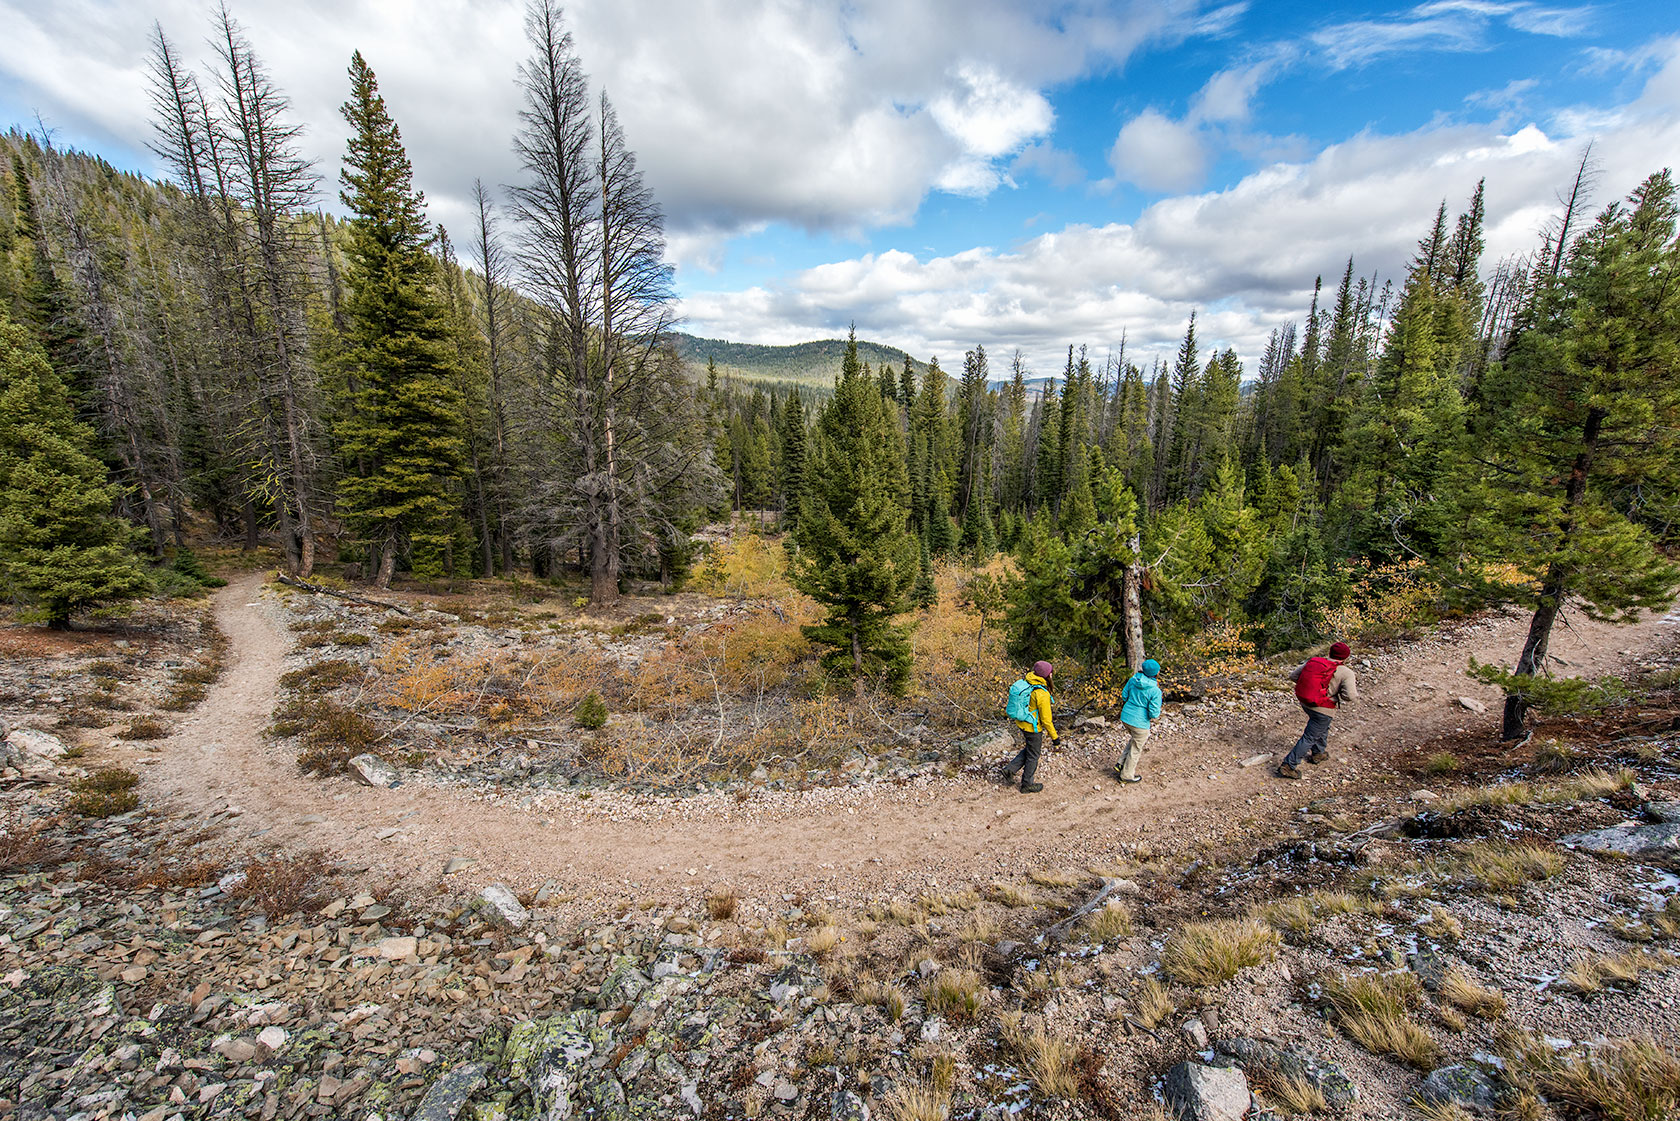 austin-trigg-patagonia-sawtooth-hiking-stanley-lake-advenure-wilderness-forest-idaho-outside-lifestyle-day-fall-weather-mountains.jpg